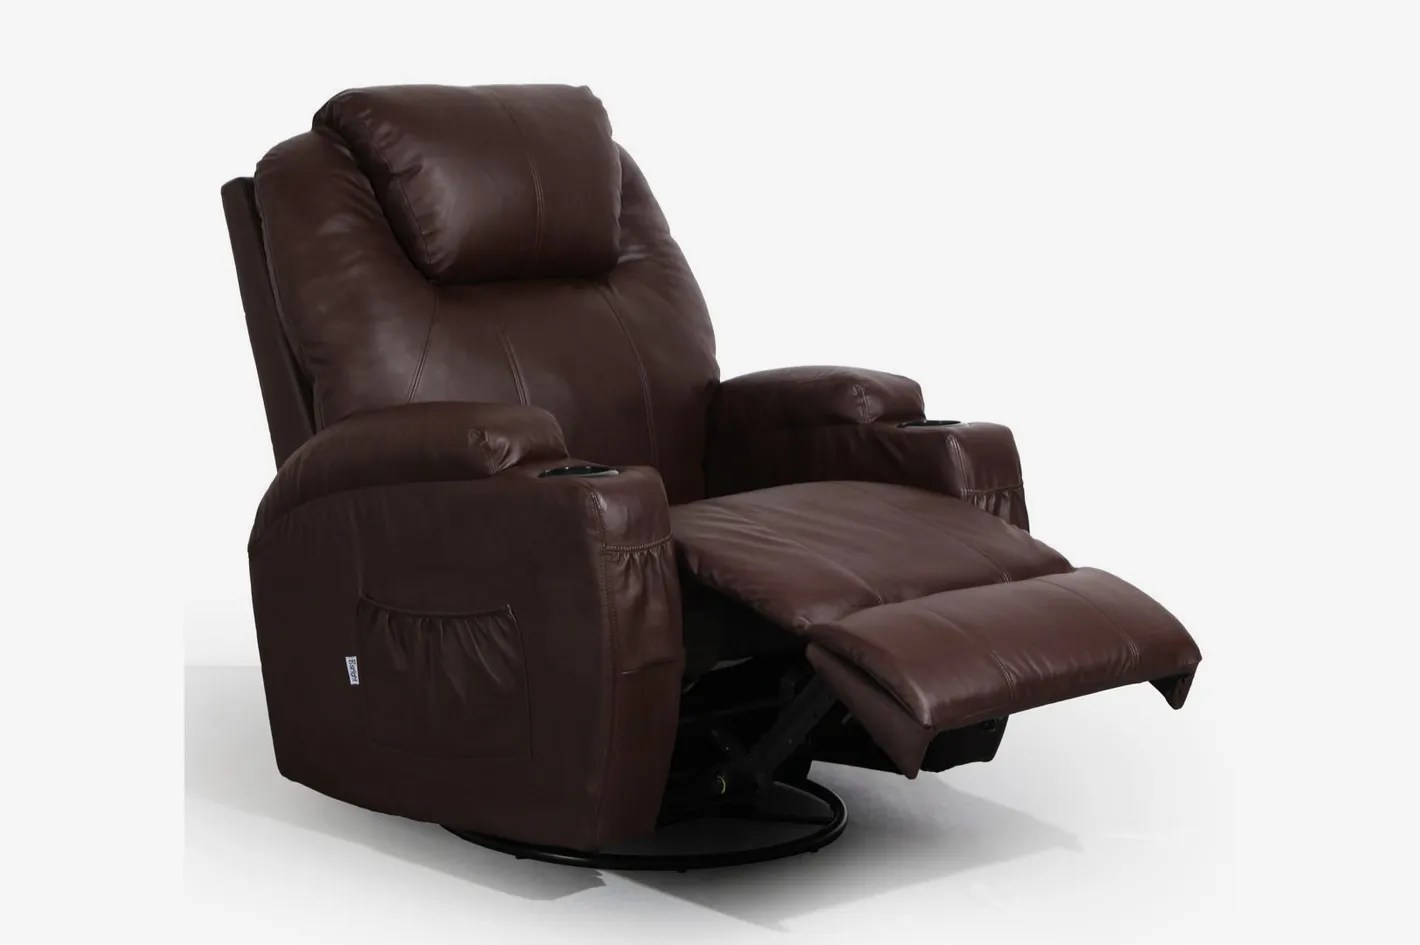 Cheap Massage Chairs 16 Best Office Chairs And Home Office Chairs 2018